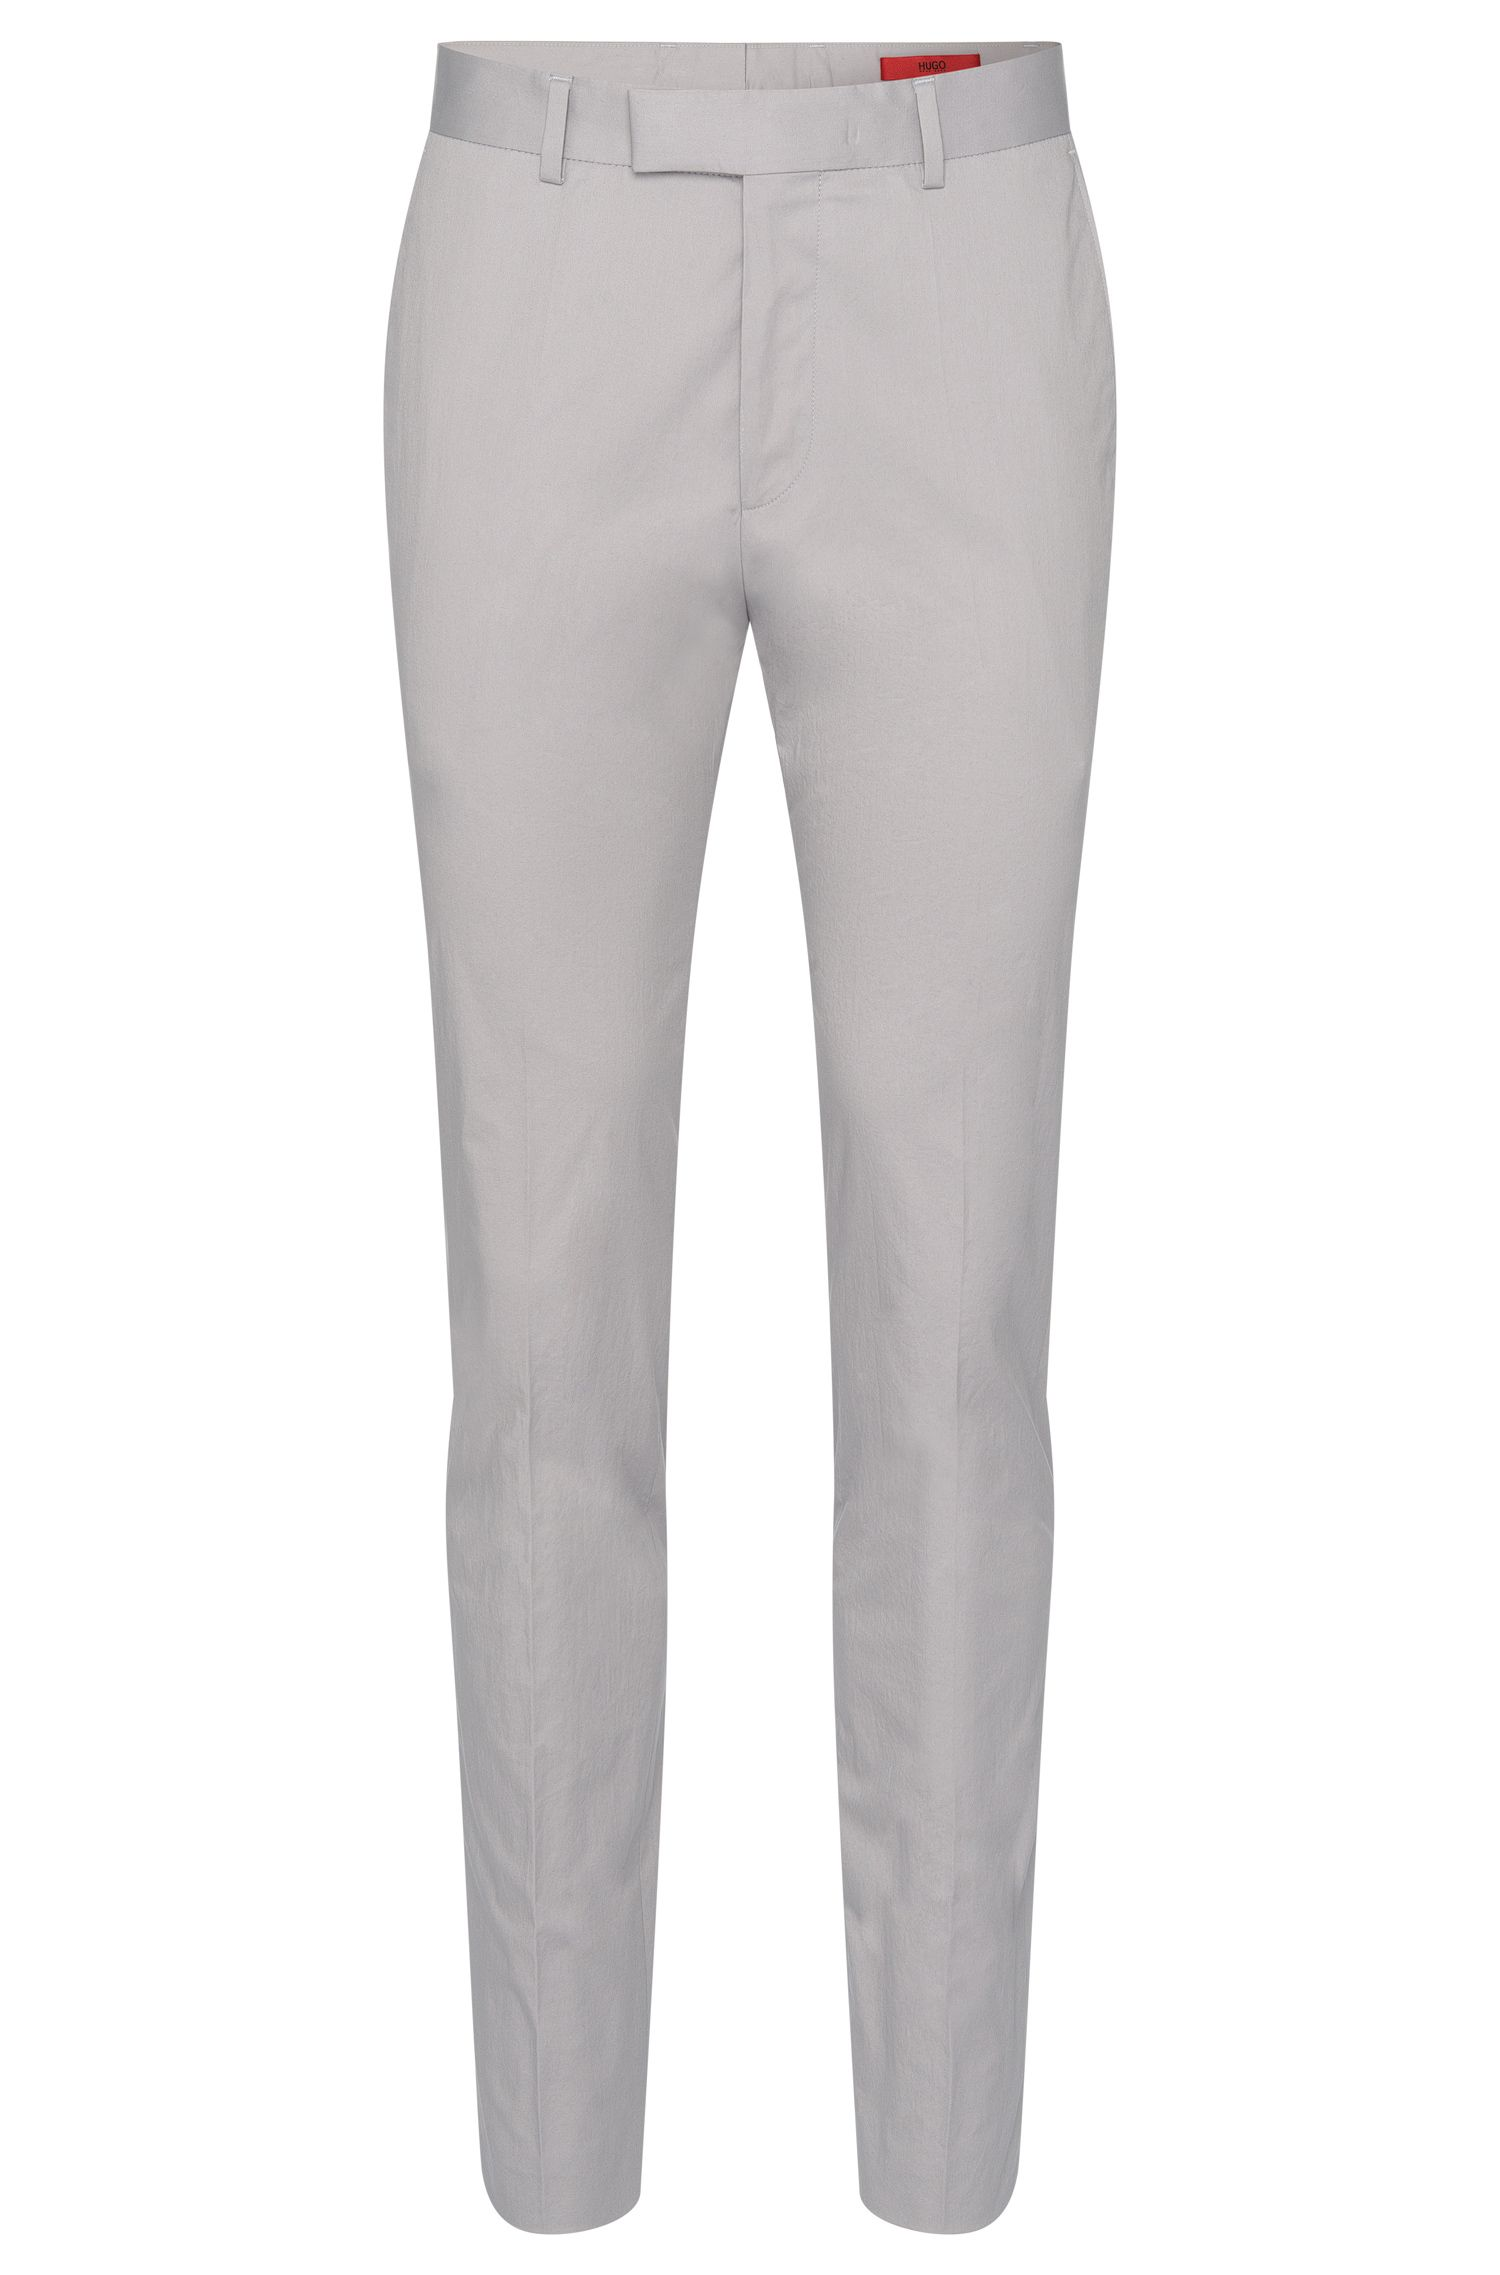 'Herion'   Extra Slim Fit,  Stretch Cotton Pants